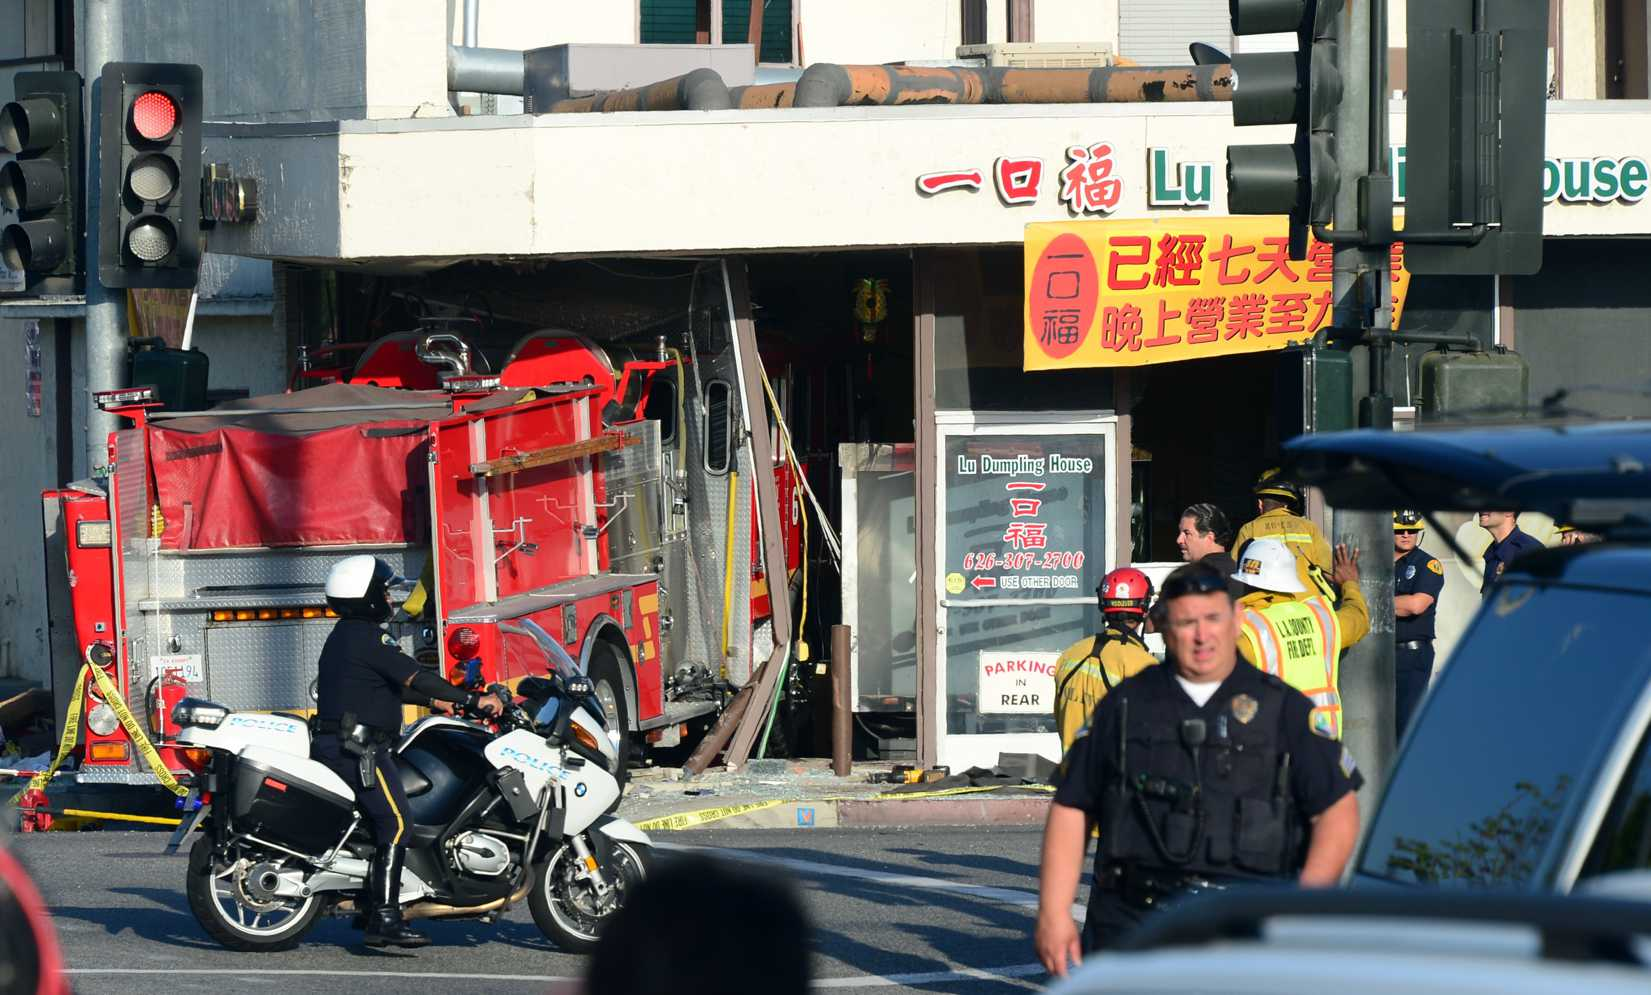 A motorcycle policeman arrives on the scene in Monterey Park, California on April 16, 2014, where two fire engines - one from the Monterey Park Fire department, another from the Alhambra Fire Department - chasing a fire crashed into each other with one barreling into a business, the Lu Dumpling House, leaving fifteen people injured.